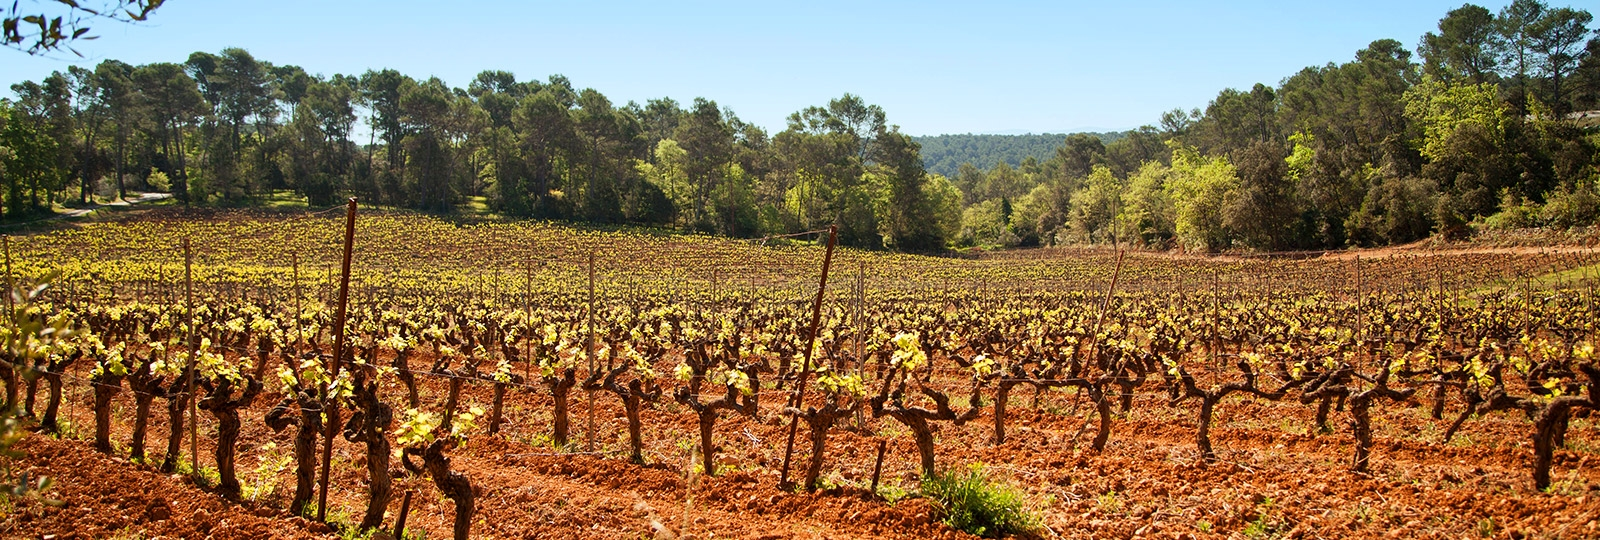 Vignobles à Lorgues